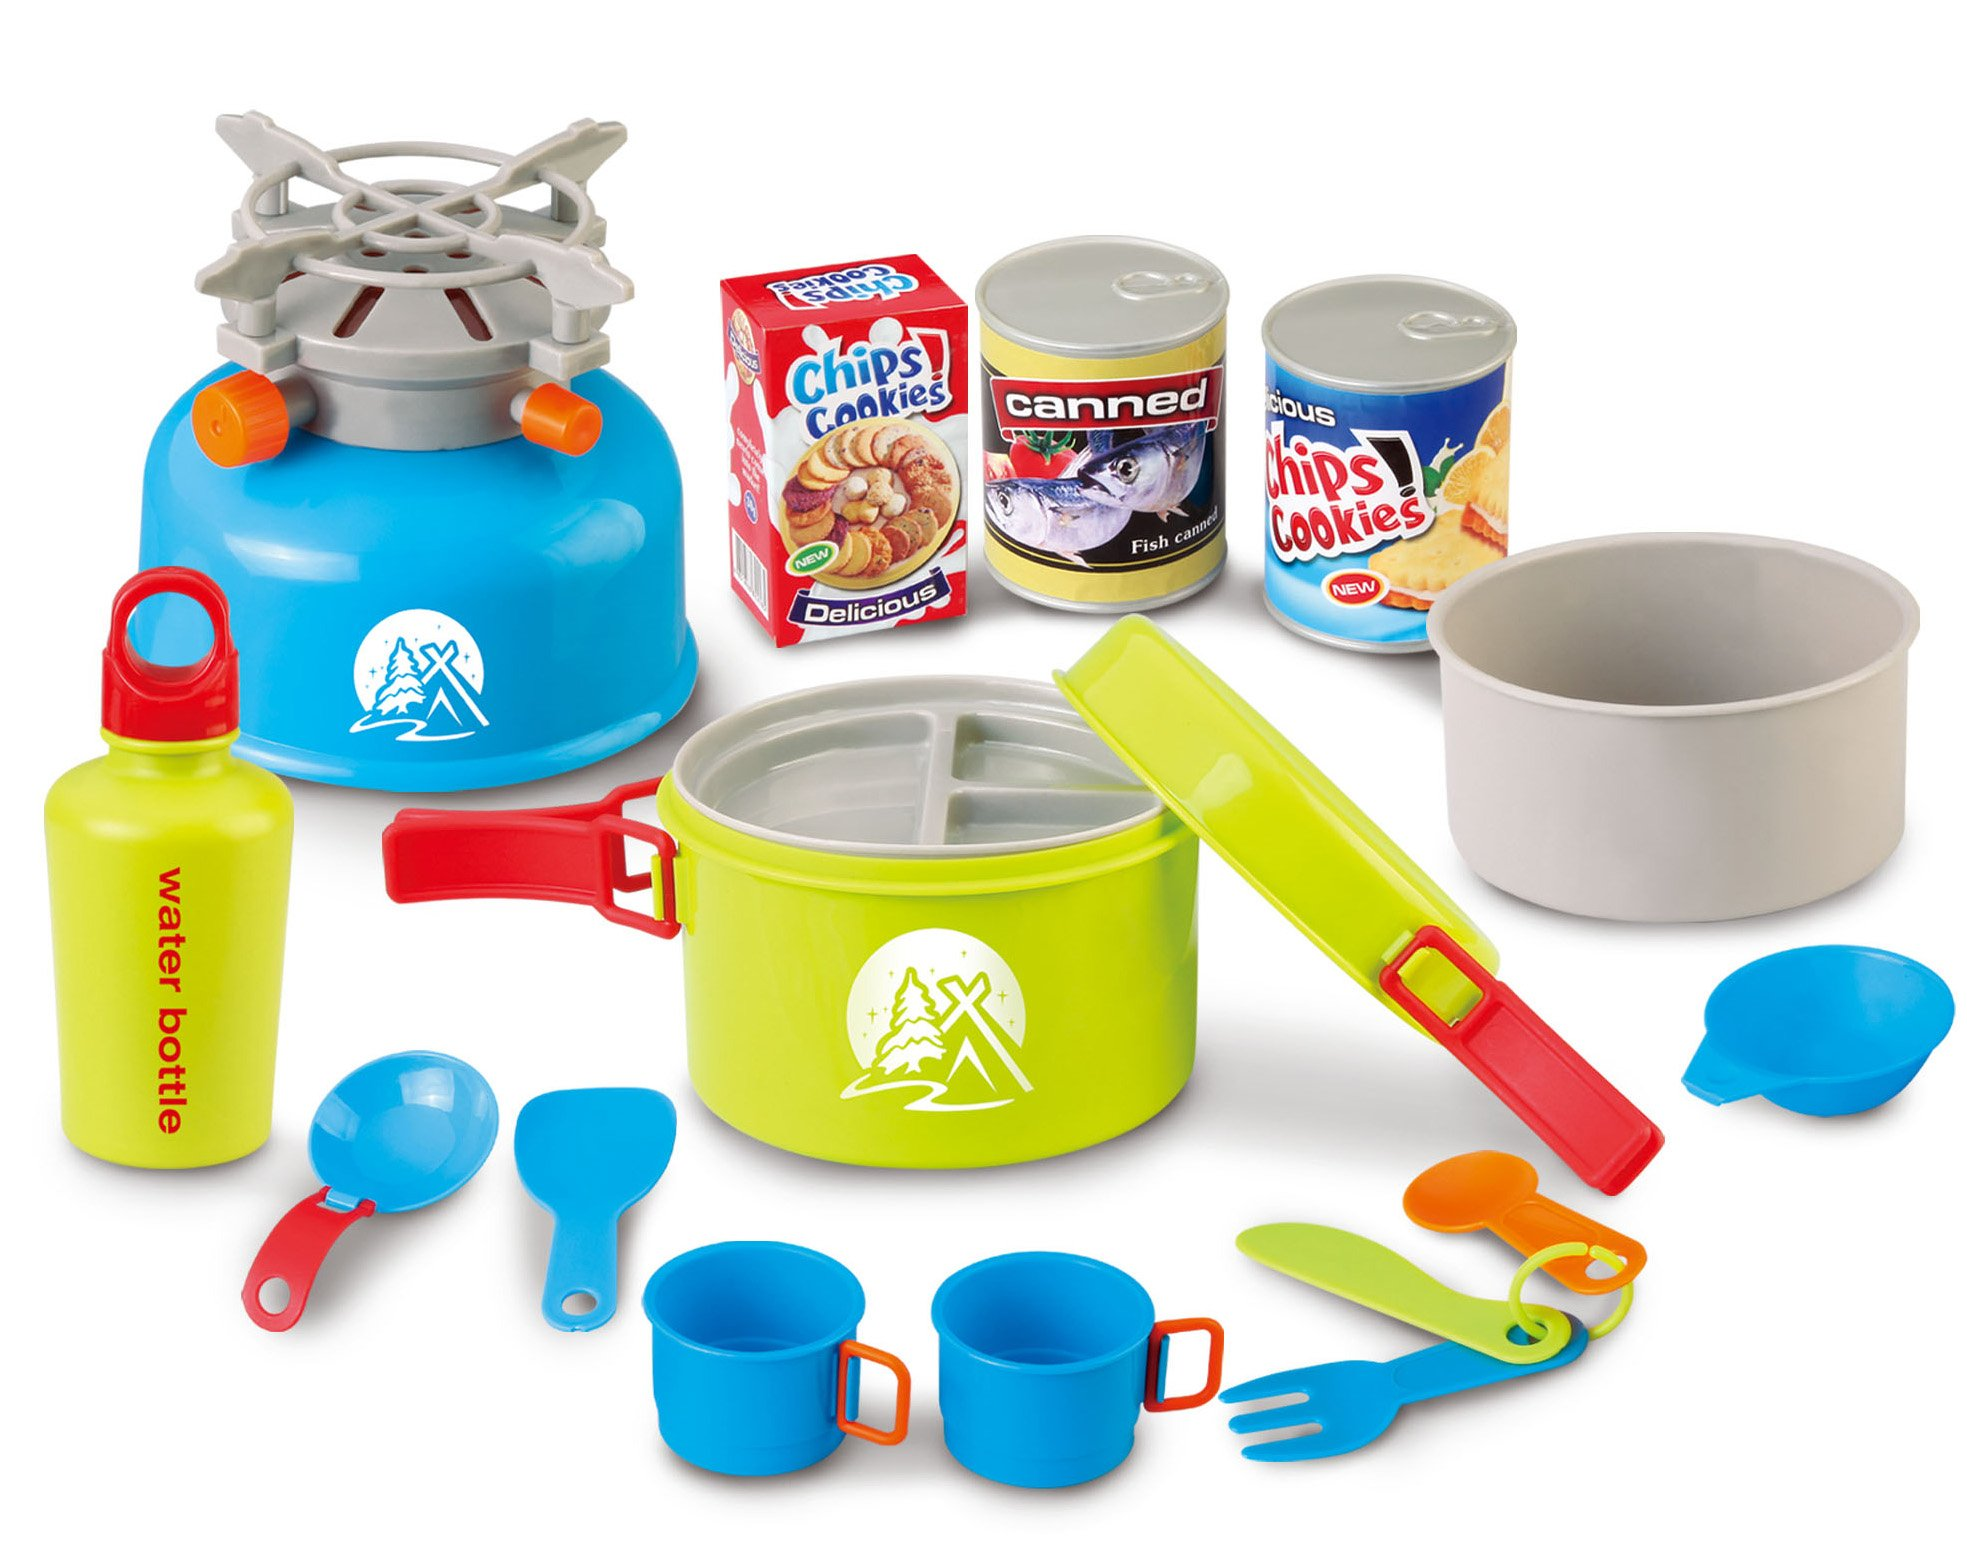 Berry Toys Little Explorer Camping Cooker Play Set (15-Piece)